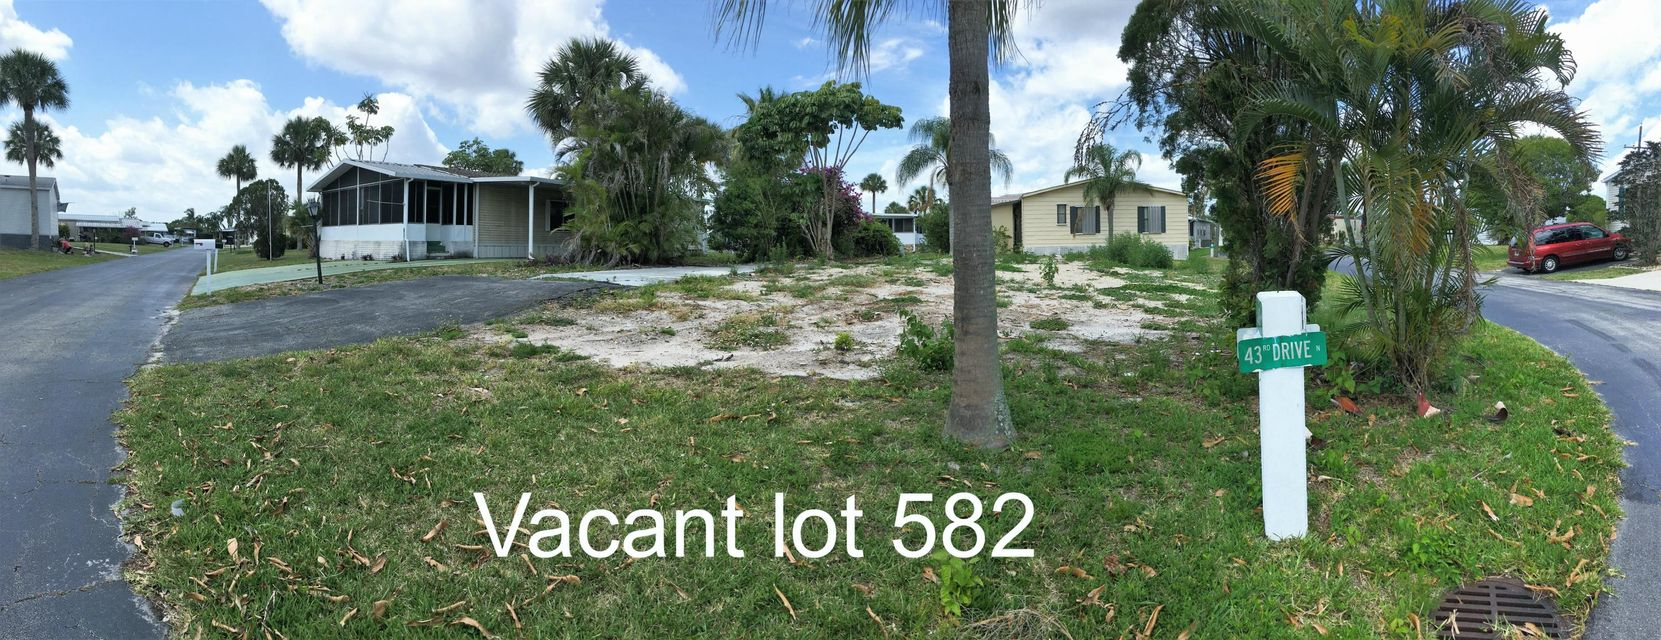 Additional photo for property listing at 7464 43rd Drive N 7464 43rd Drive N West Palm Beach, Florida 33404 Estados Unidos